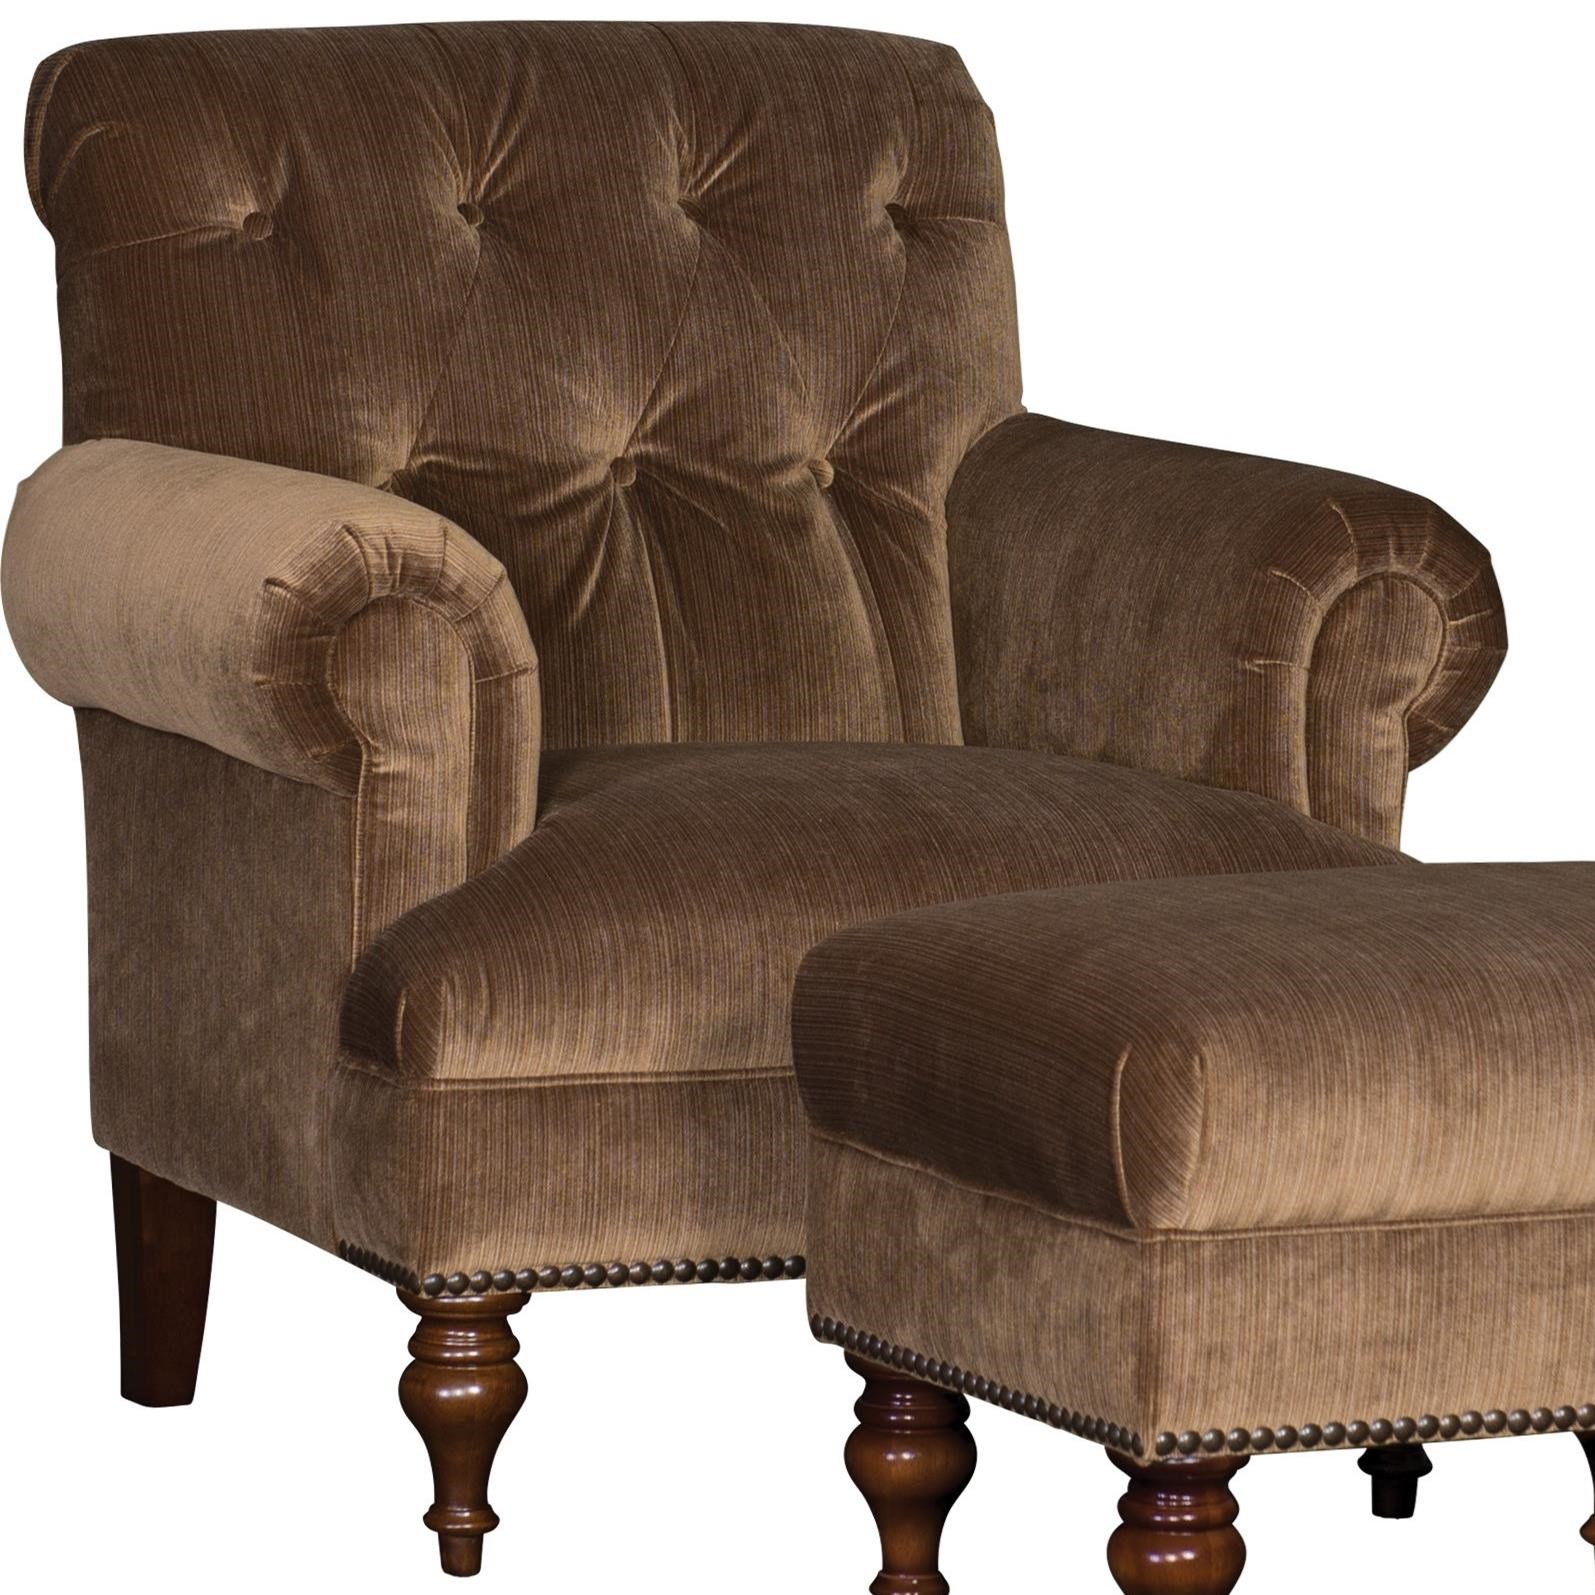 Mayo 3419 Tufted Back Chair - Item Number: 3419F40-STRICH